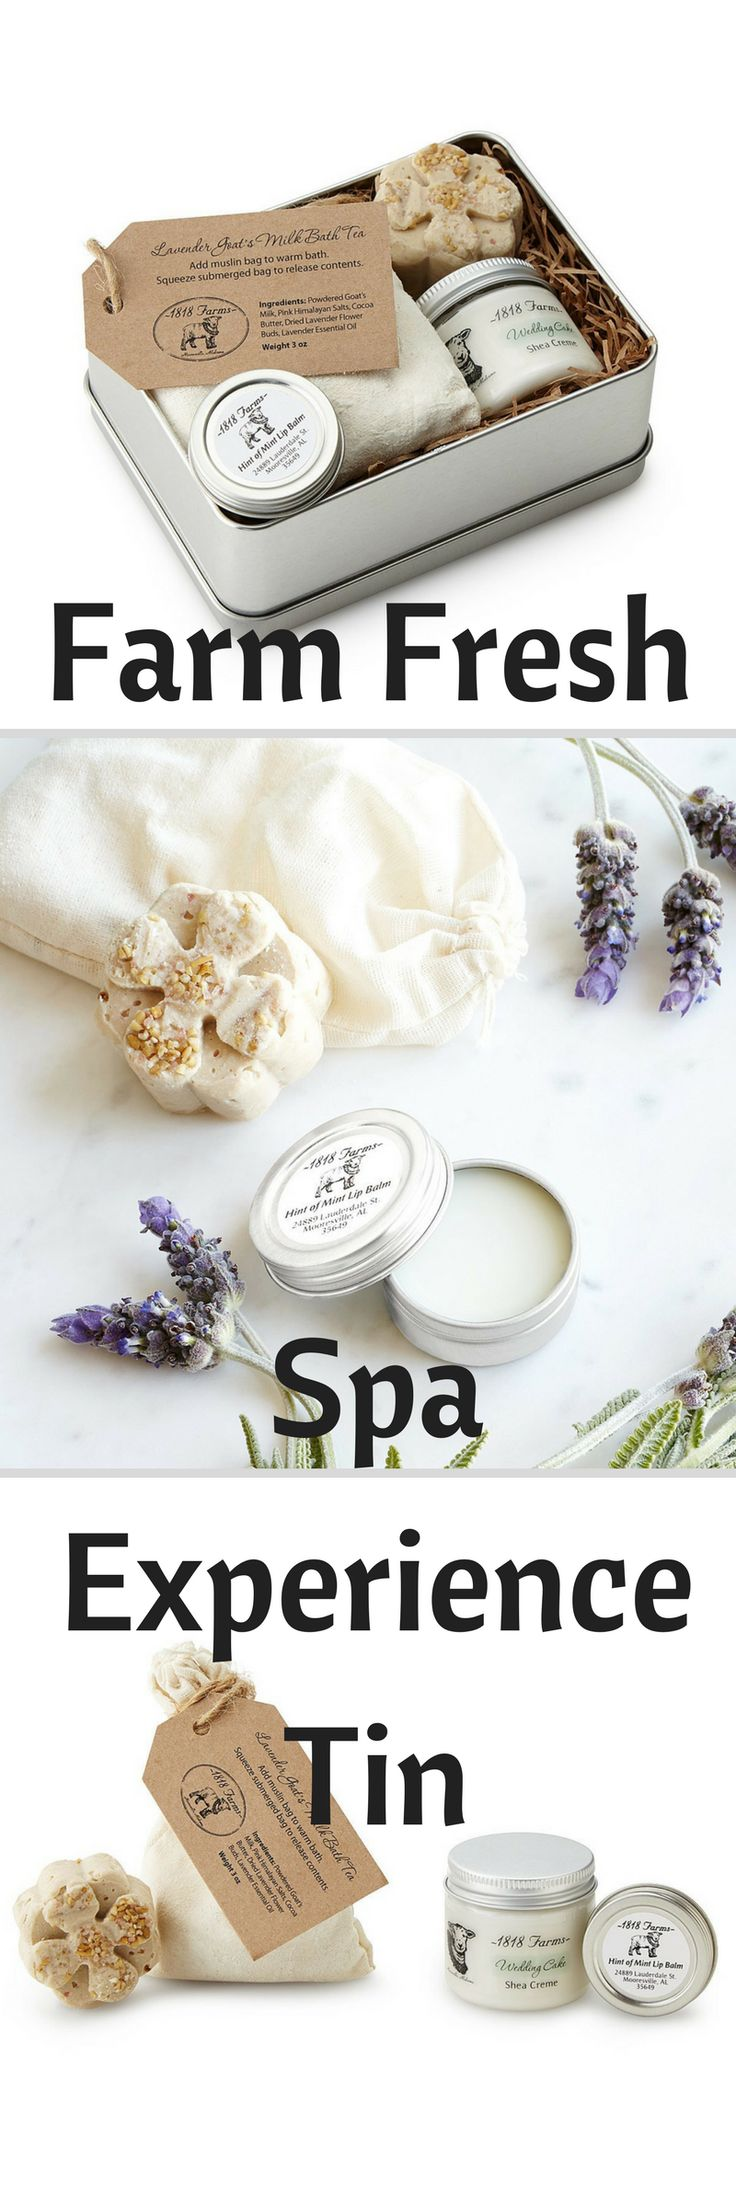 81 Best Affordable Gift Ideas Images On Pinterest Aromatherapy Velvy Goats Milk Shower Cream 1liter Licorice Ampamp Sea Butter Fresh This Homegrown Kit From Mooresville Alabama Offers Handcrafted Products For A Soothing Spa Experience Lavender And Shea